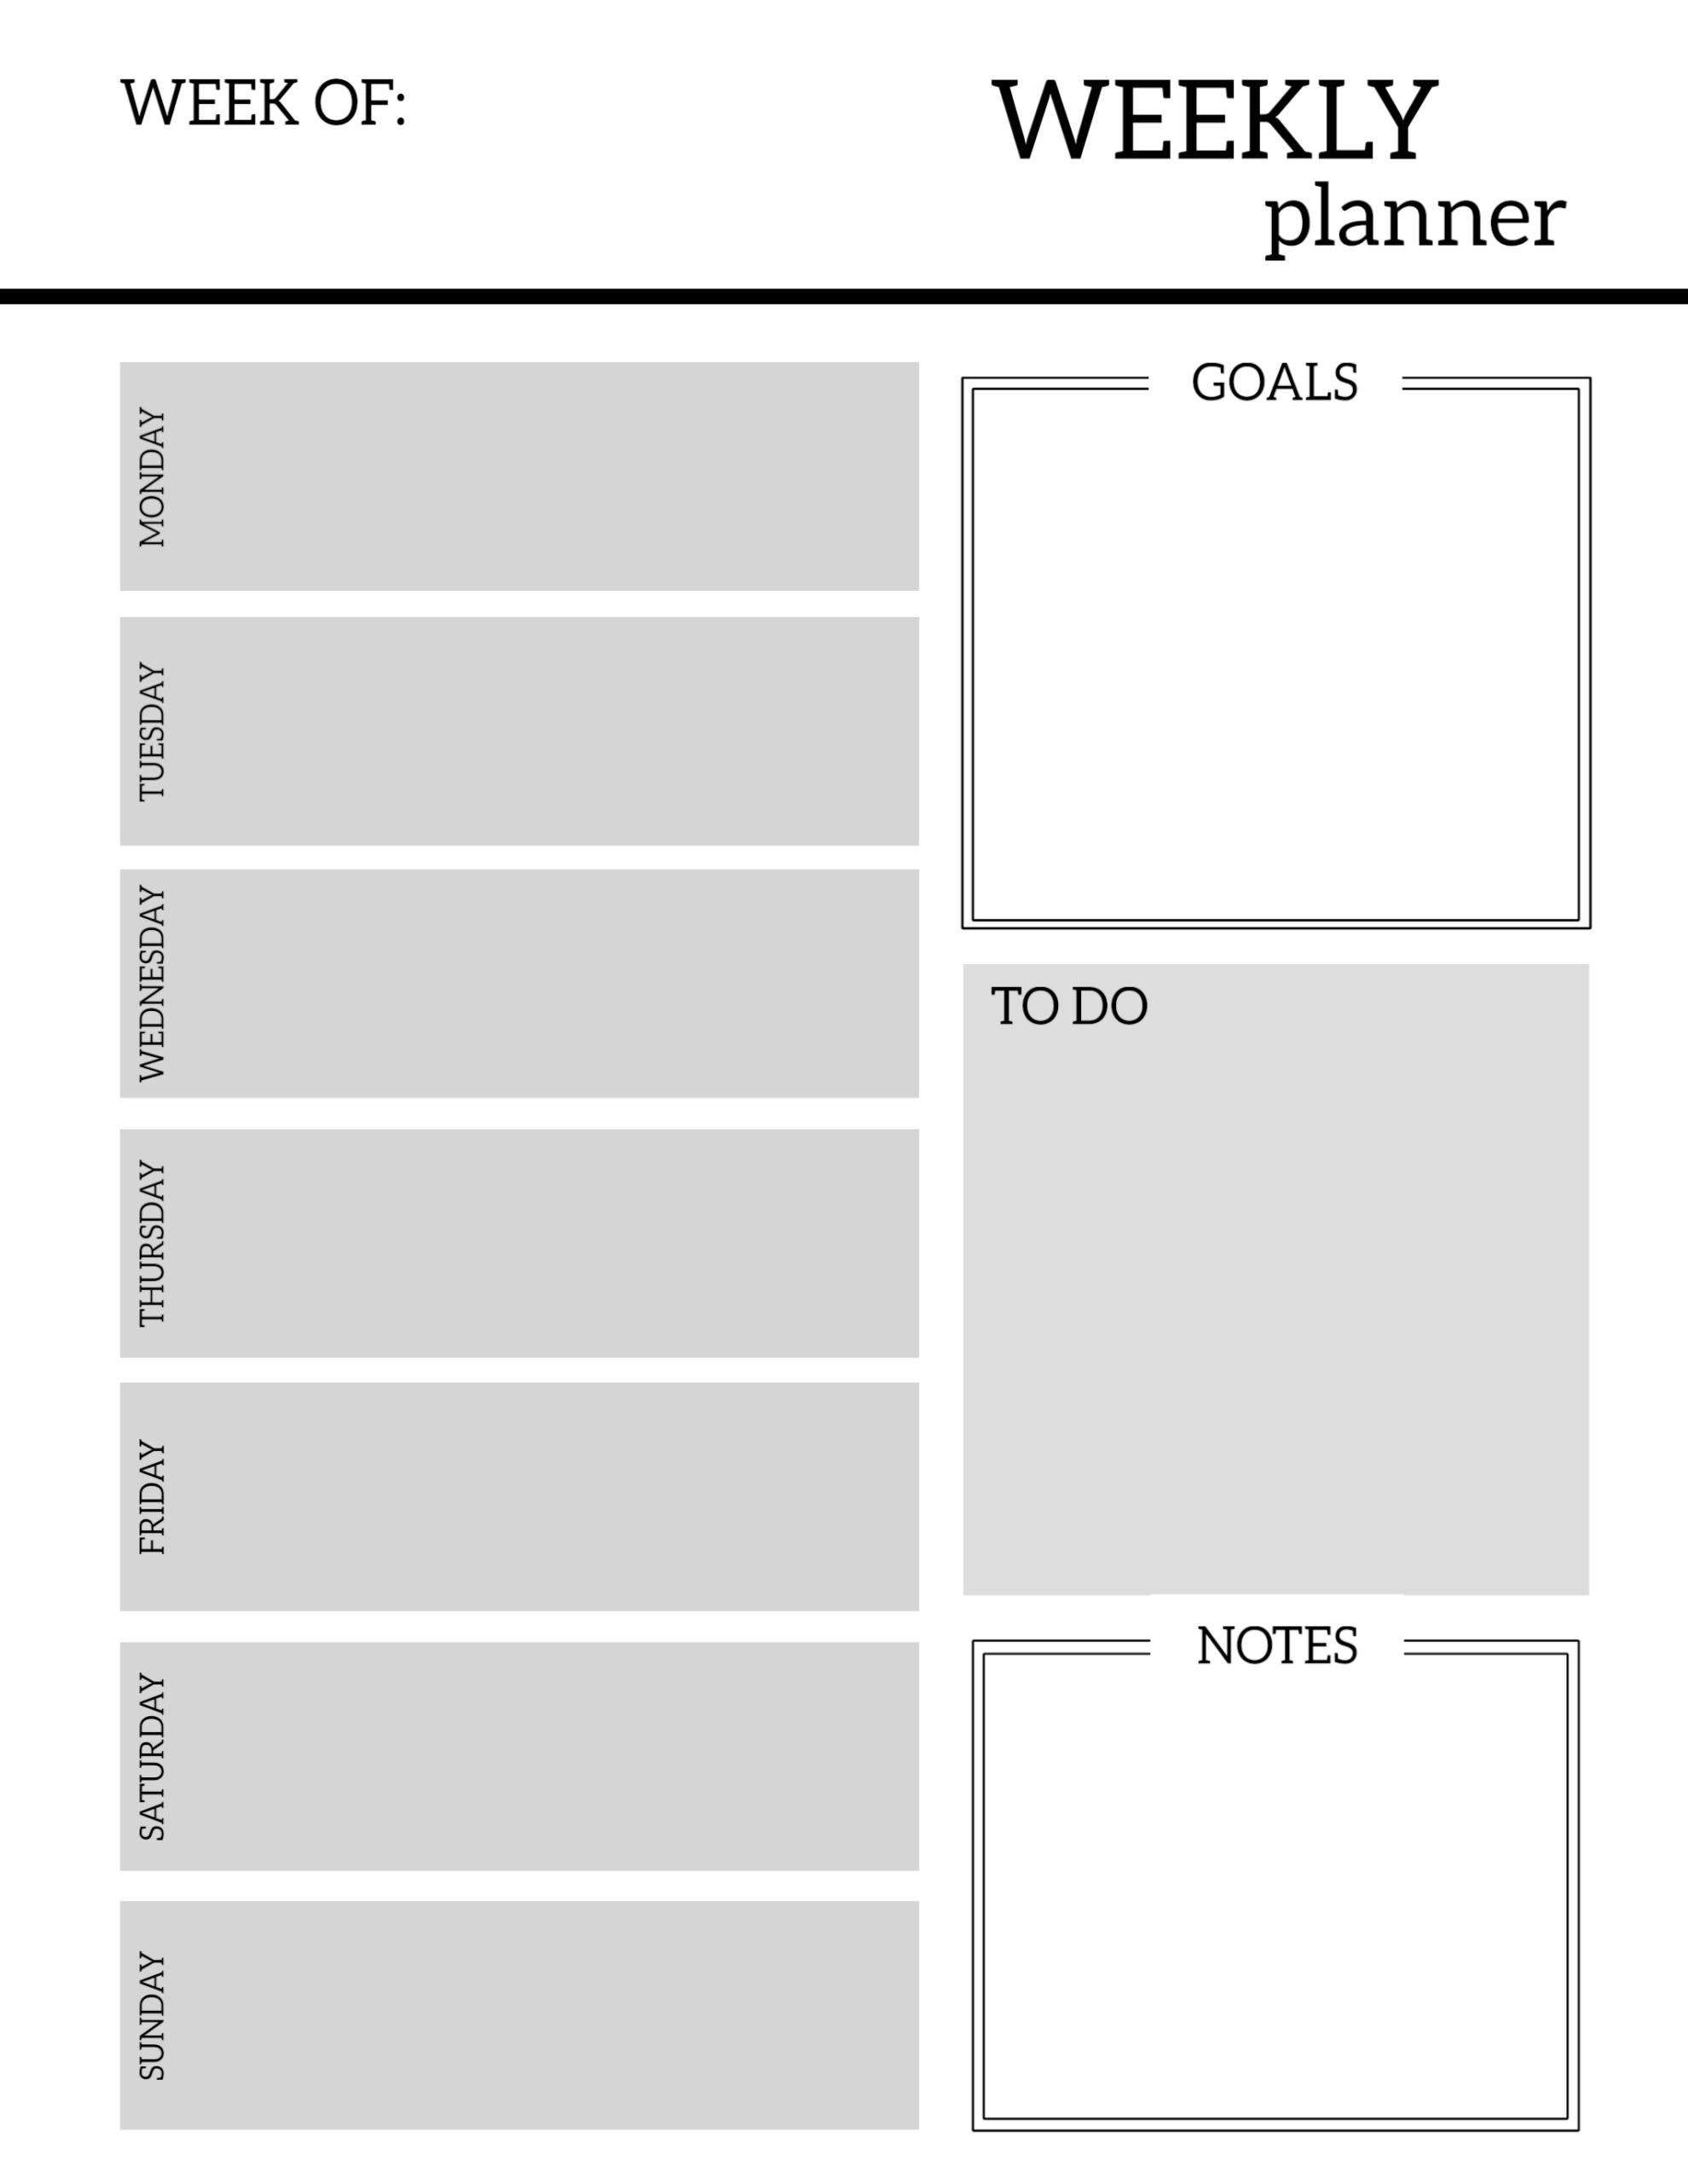 This is a graphic of Shocking Printable Weekly Planner Template